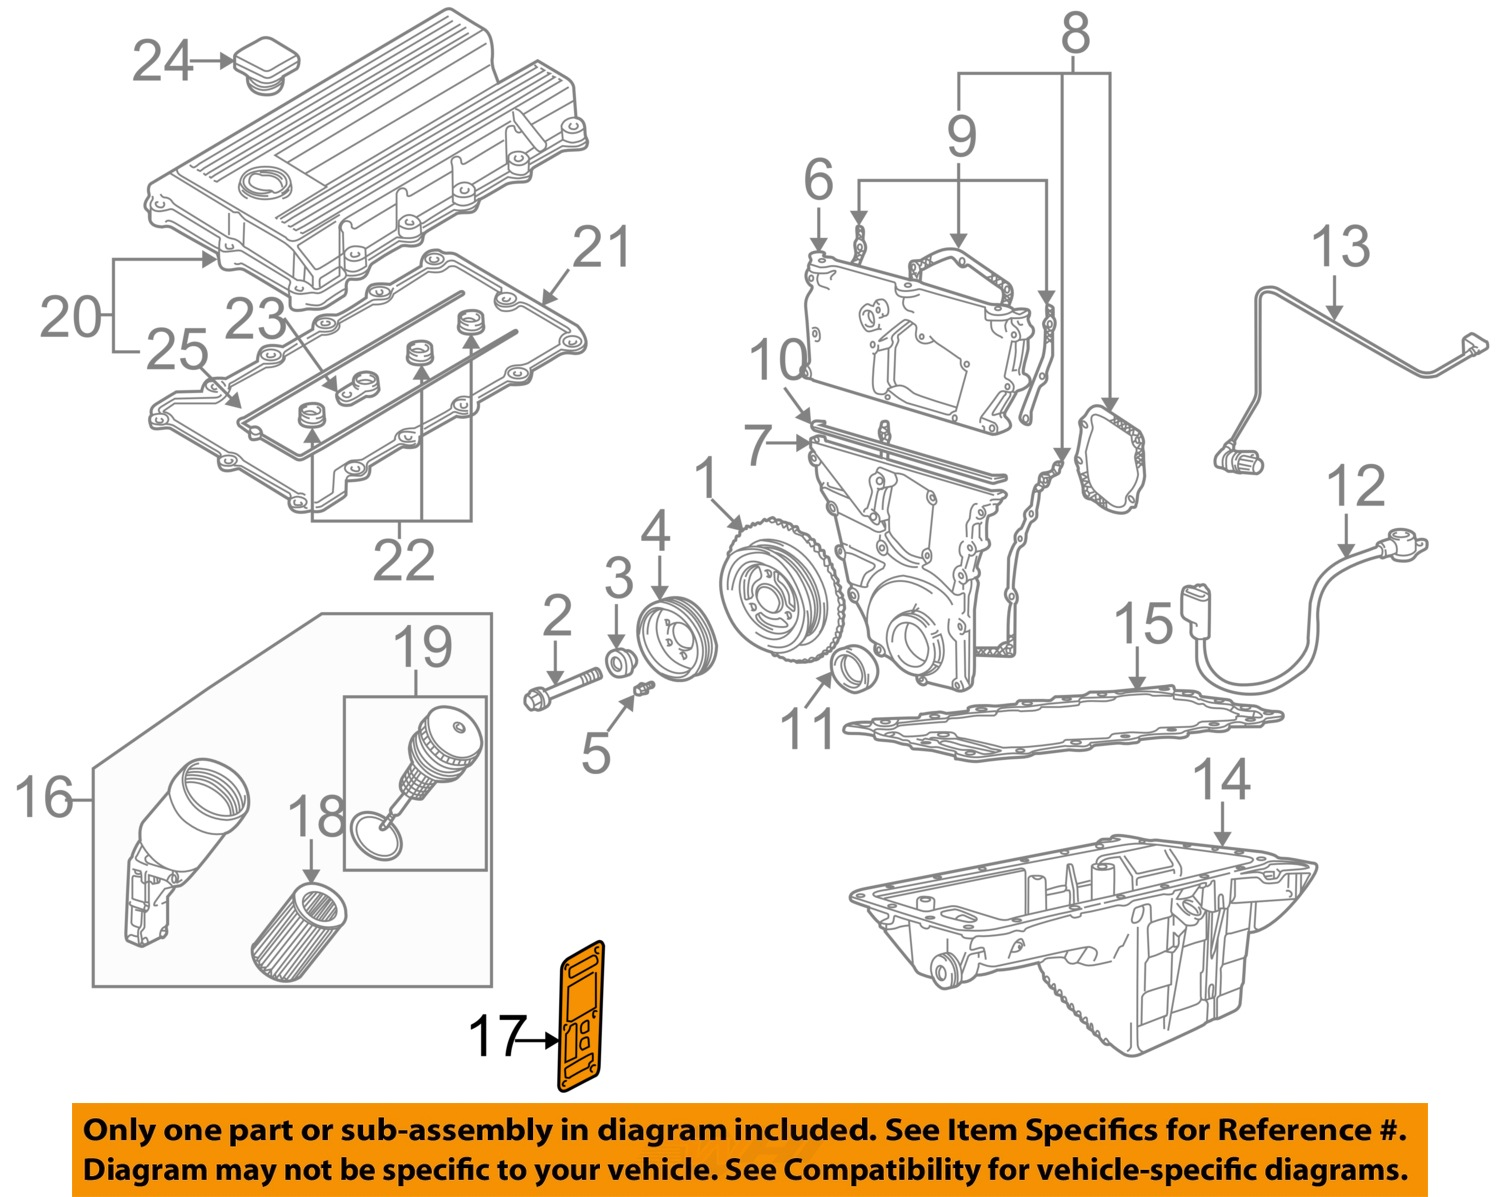 Bmw Z3 Engine Diagram X Wiring Diagrams Online 1998 Oem Z L Oil Filter Housing Gasket 96 98 1 9l L4